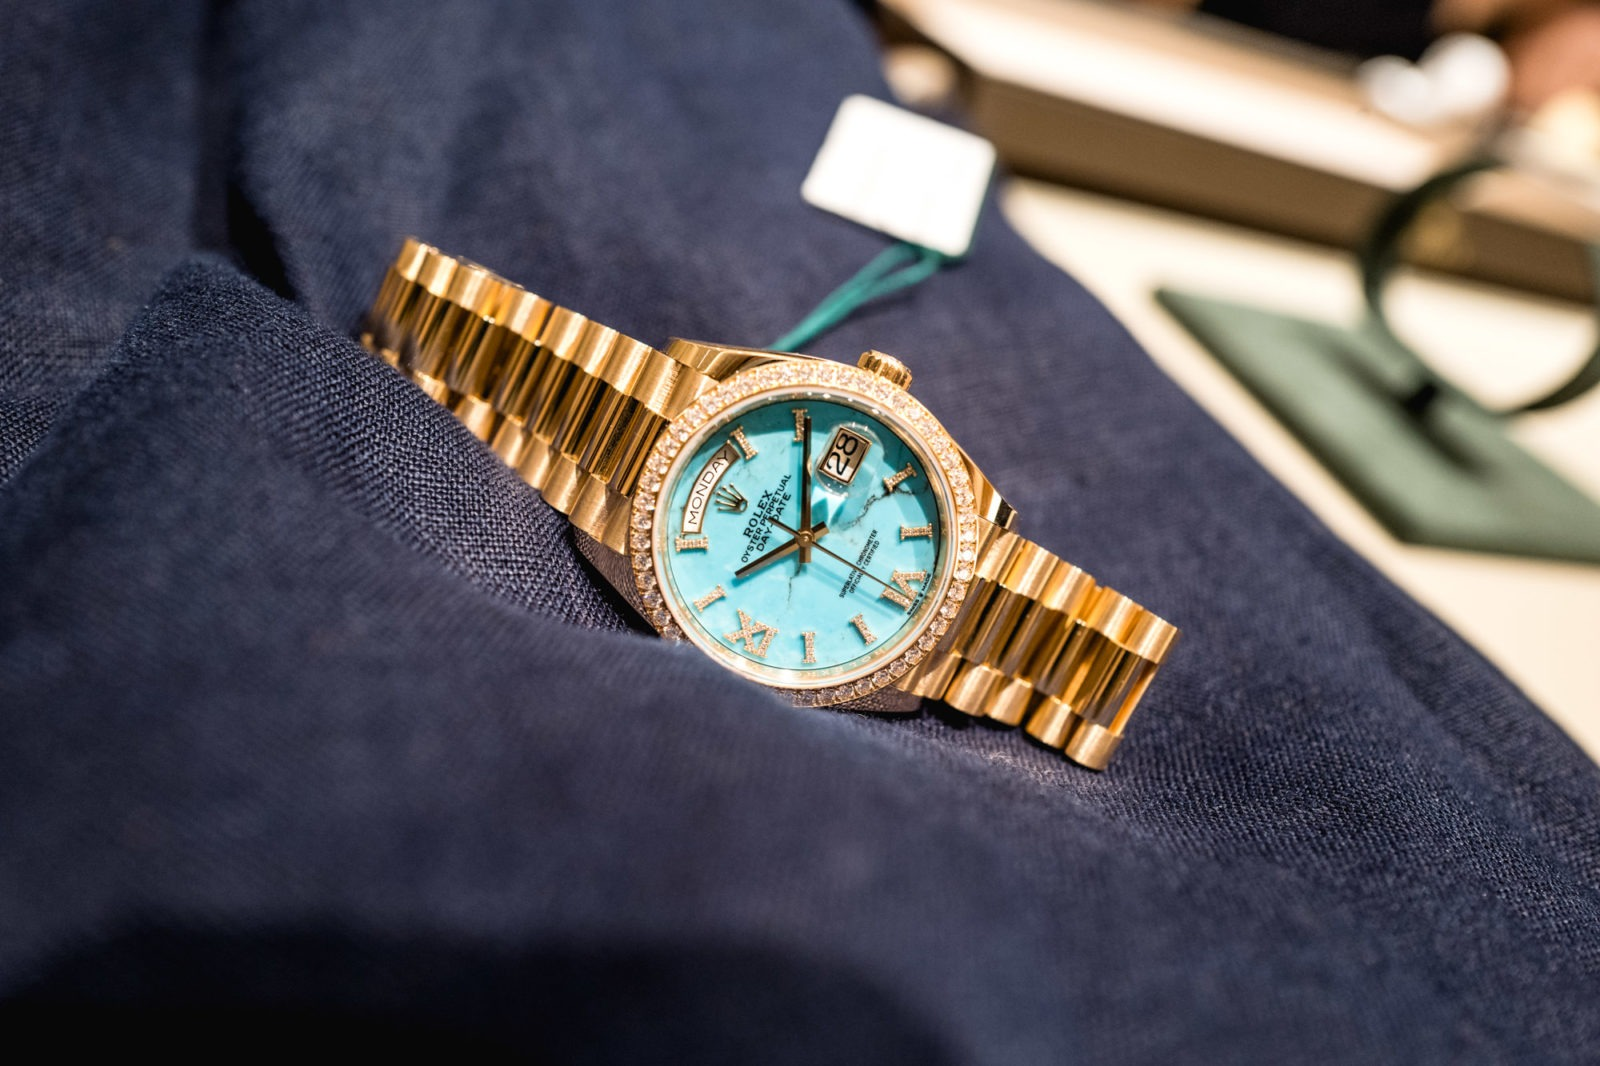 Rolex Day-Date 36 - Baselworld 2019